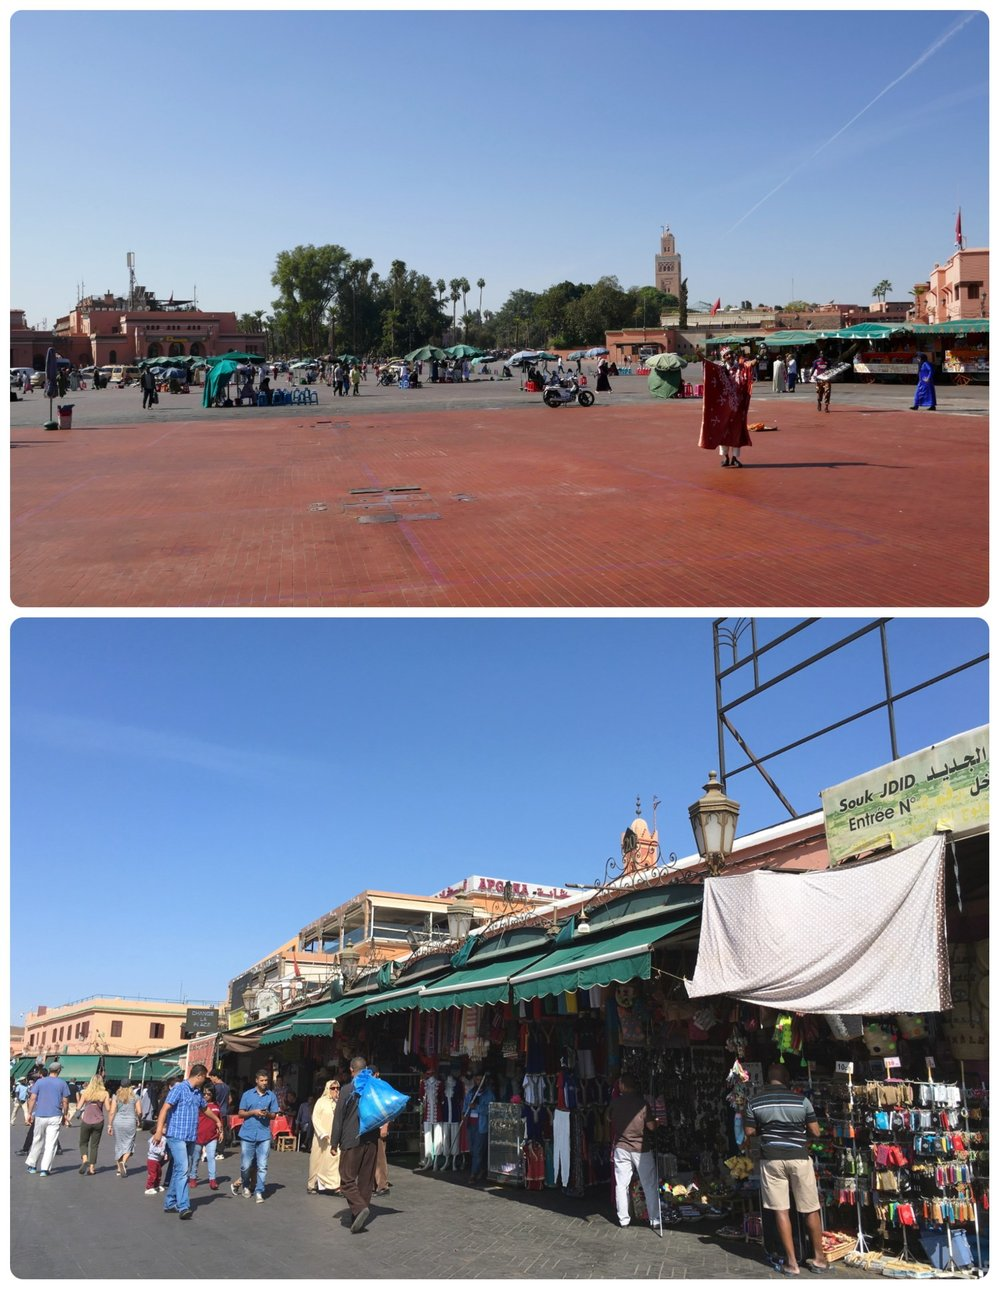 Jemaa el Fna Square in the Medina (Old Town), Marrakech, Morocco.